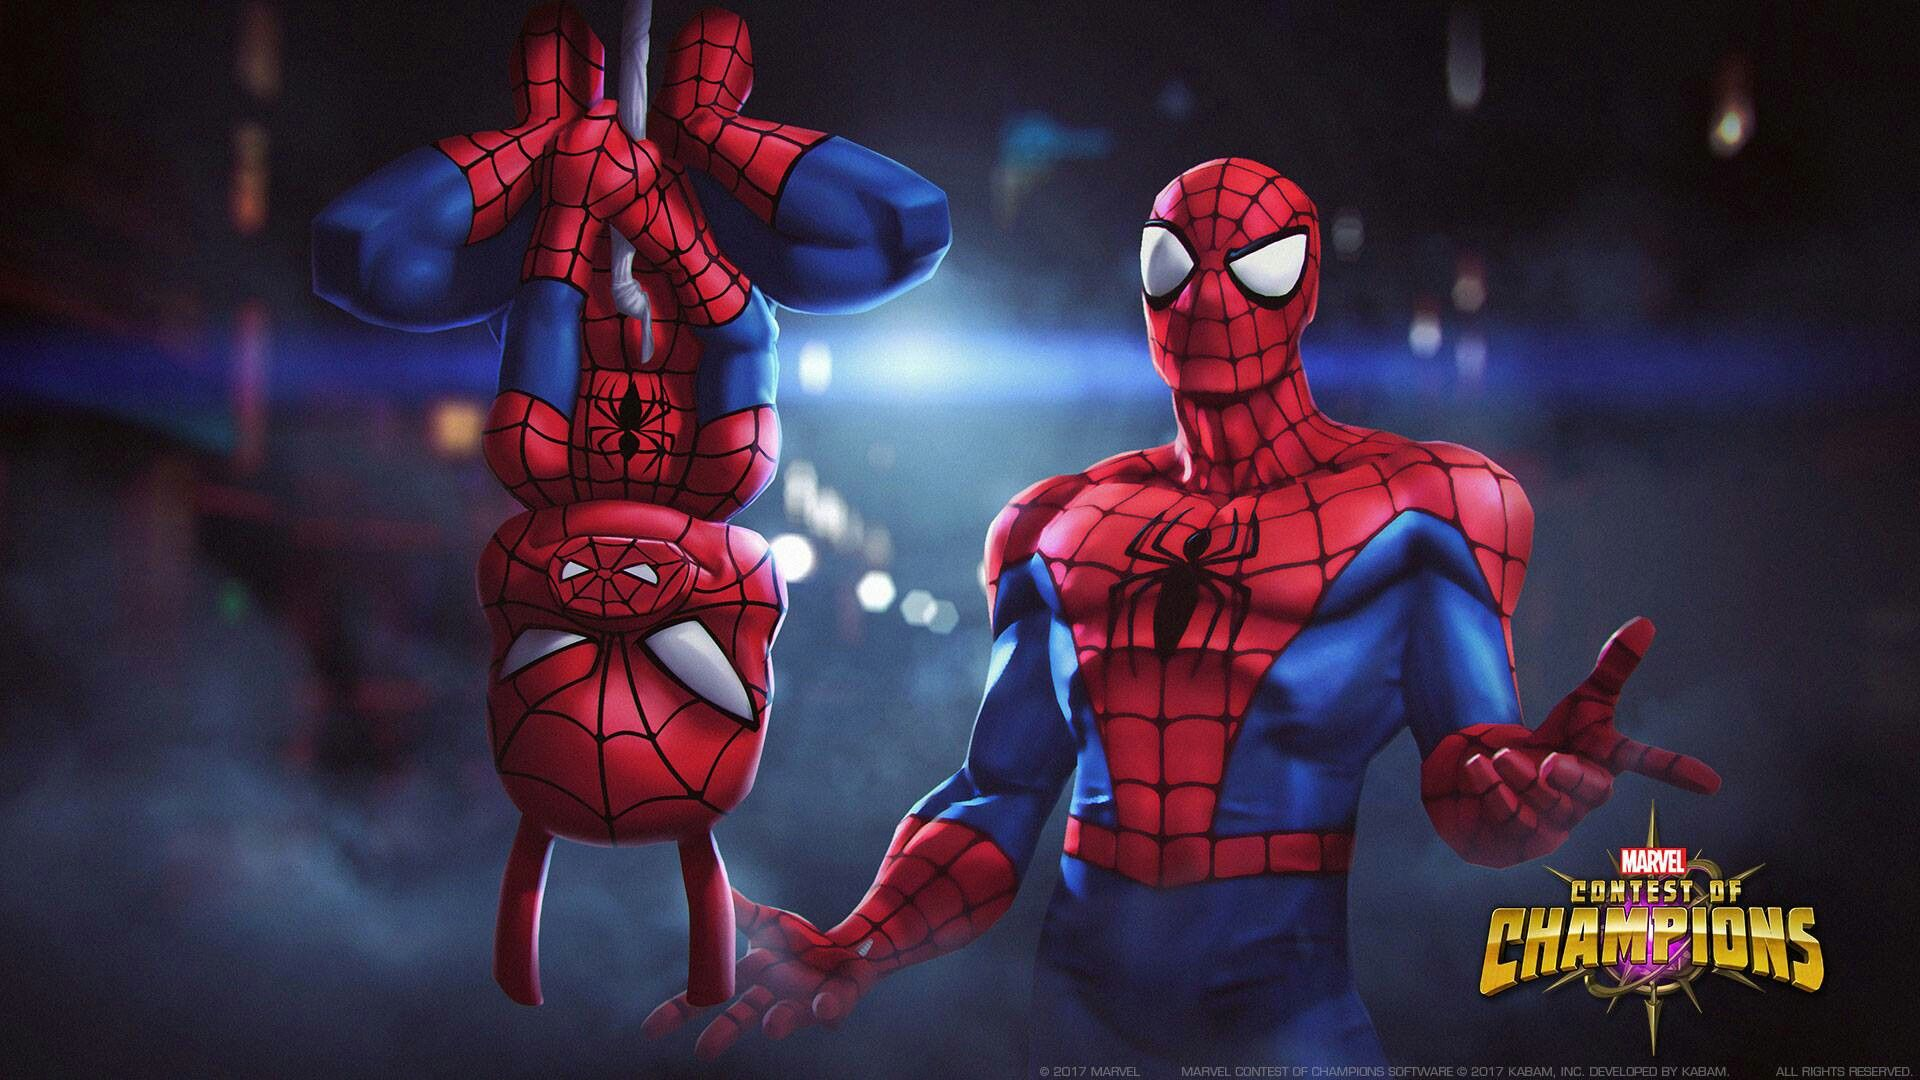 Pin by Linc¸Ä¾n on Marvel Contest of Champions Pinterest